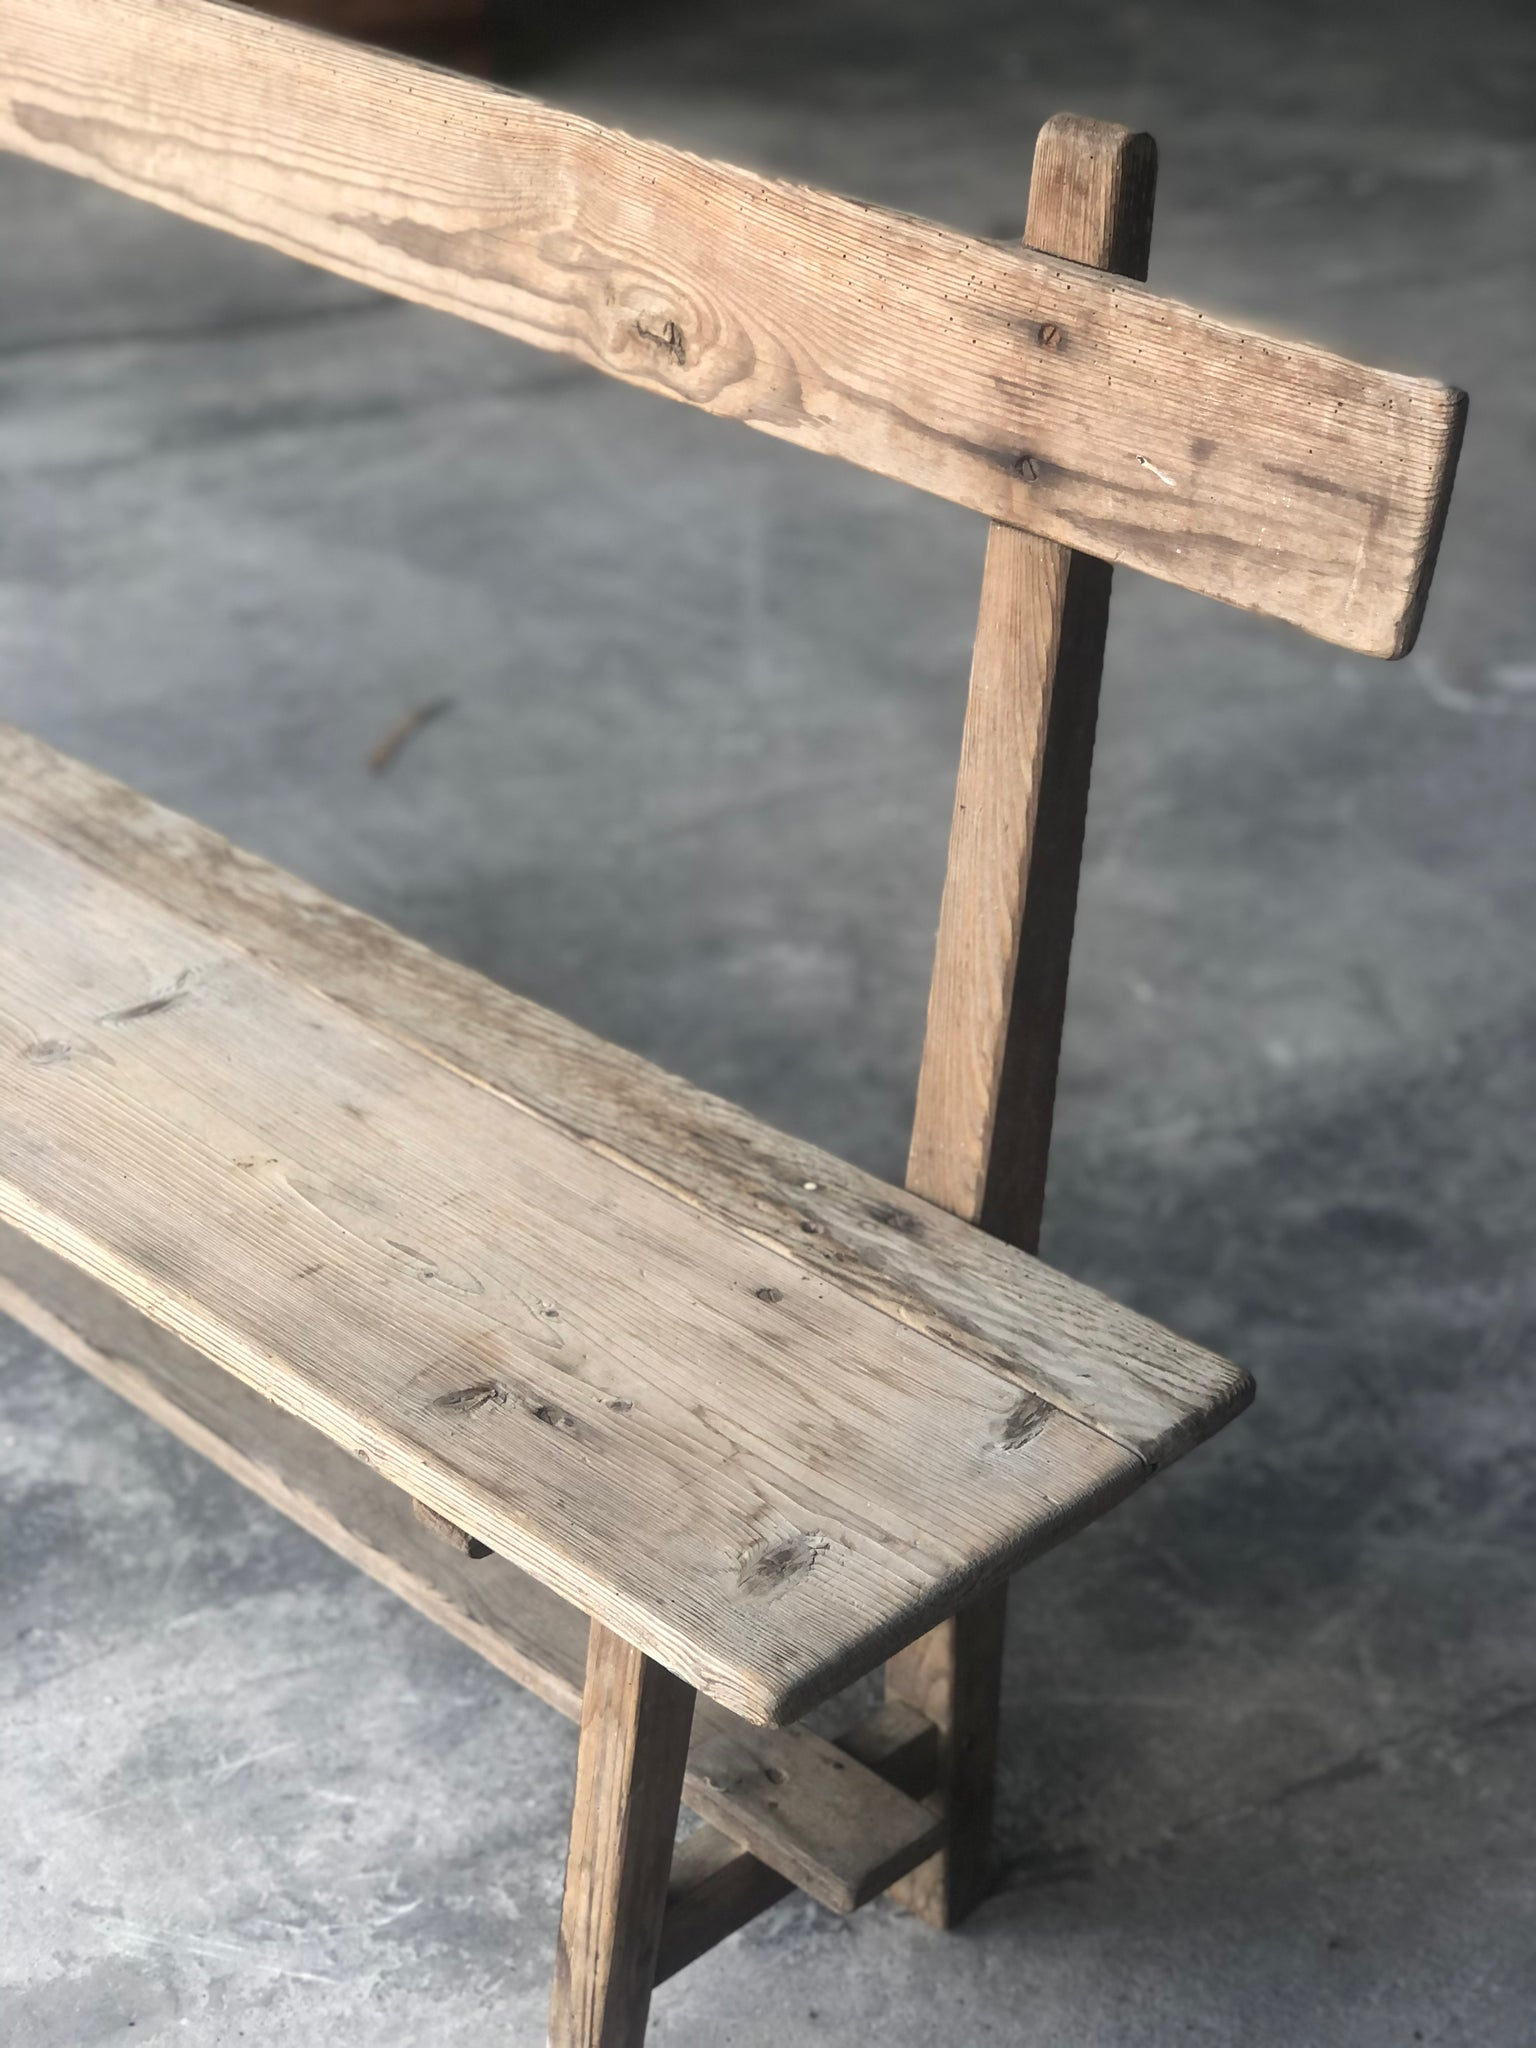 Antique French rustic pine bench with back rest